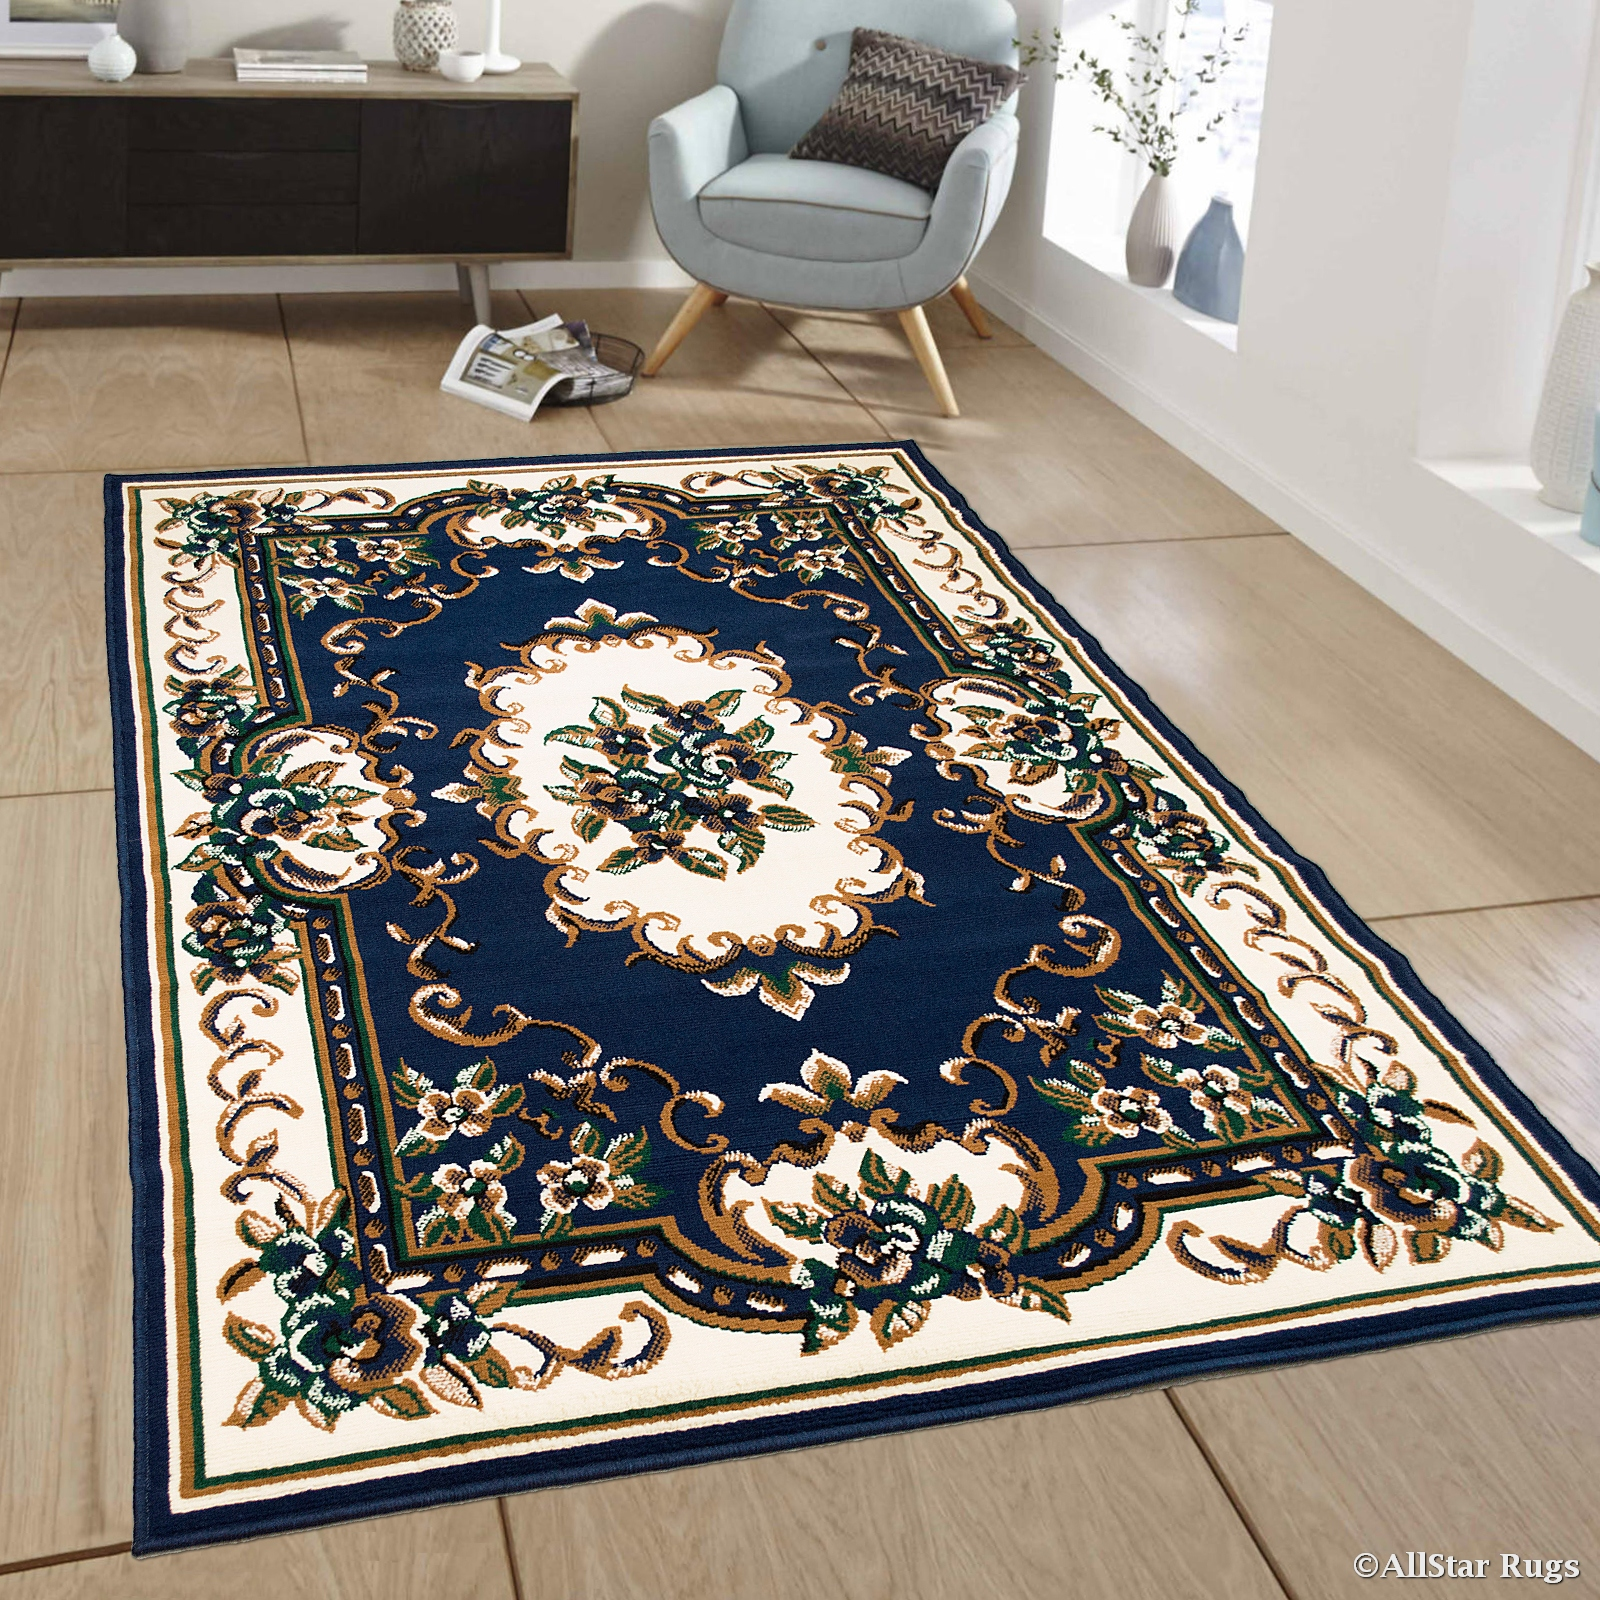 Allstar Blue Woven High Quality Rug Traditional Persian